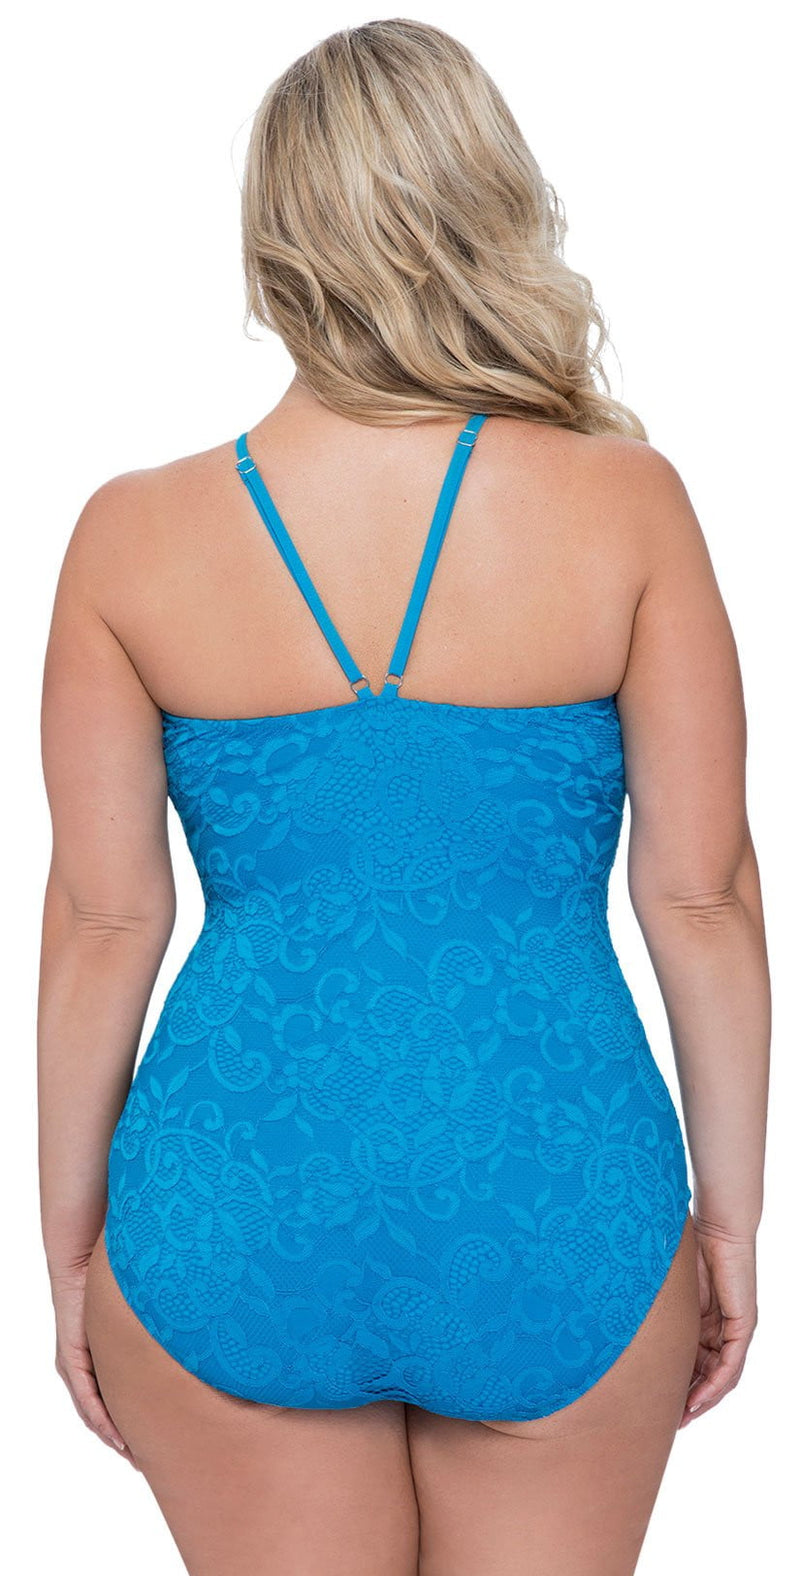 Profile by Gottex Shalimar One-Piece Swimsuit in Peacock E938 2W69 309: